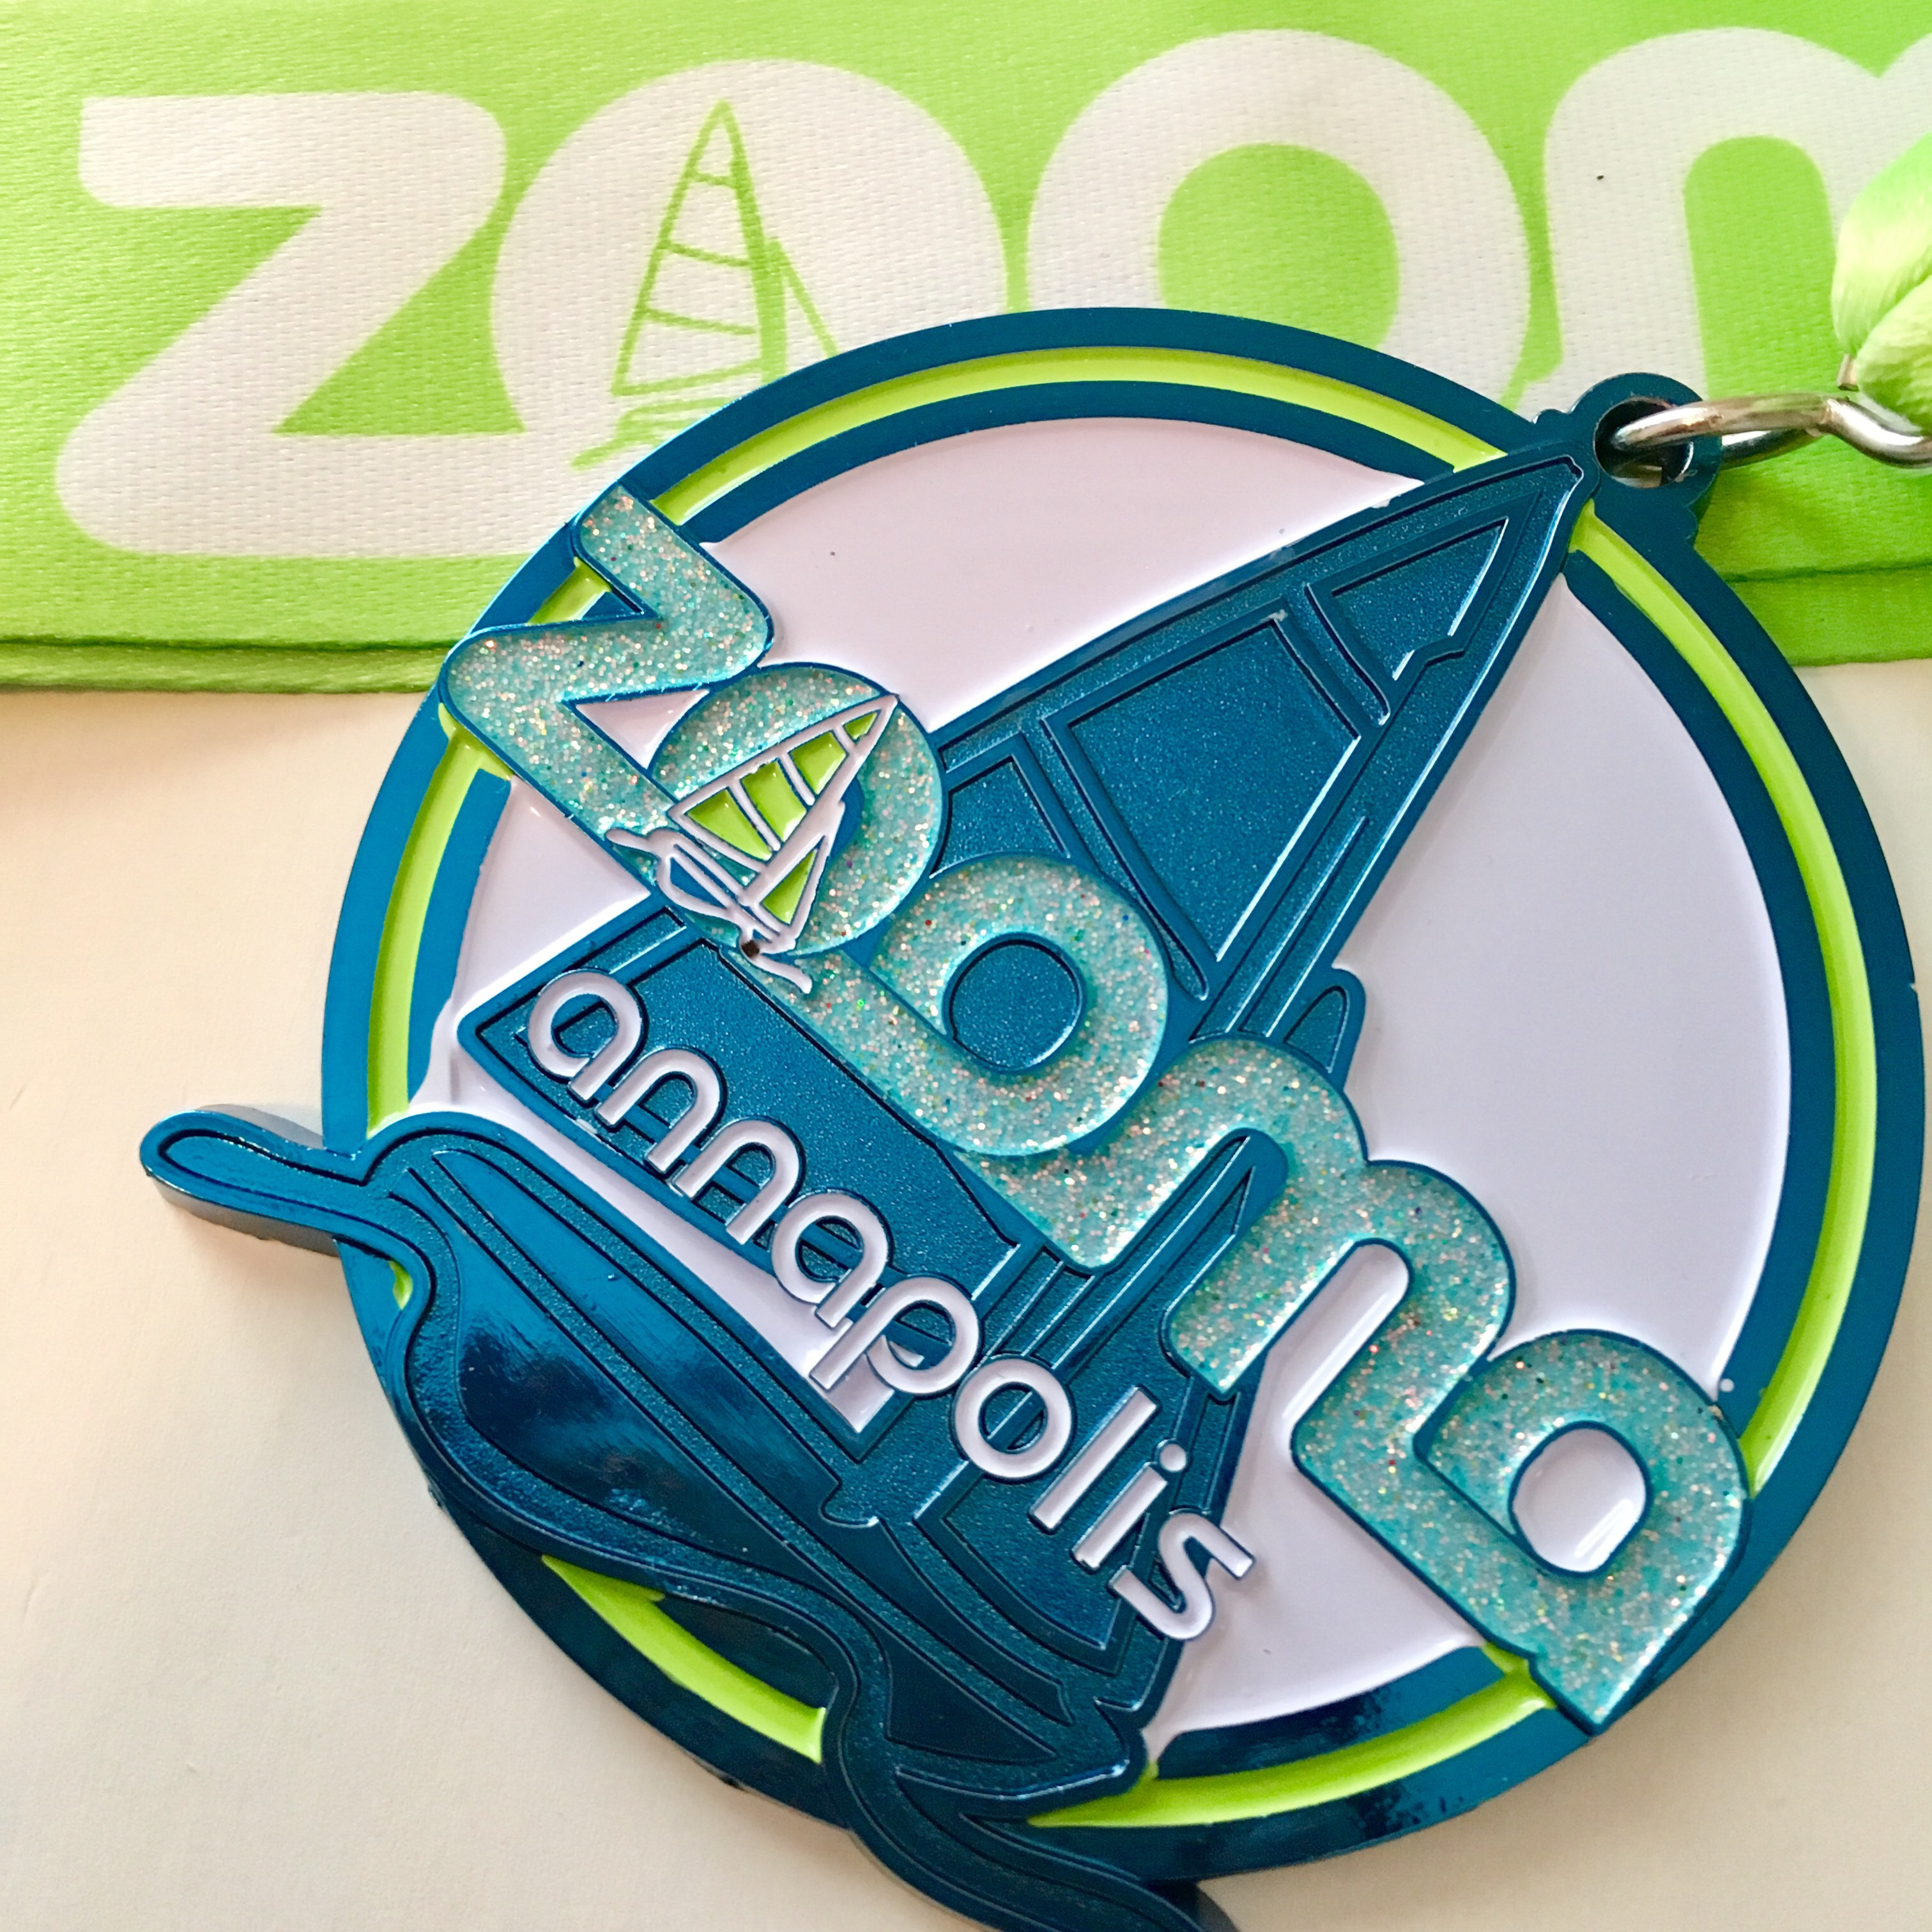 2017 ZOOMA race